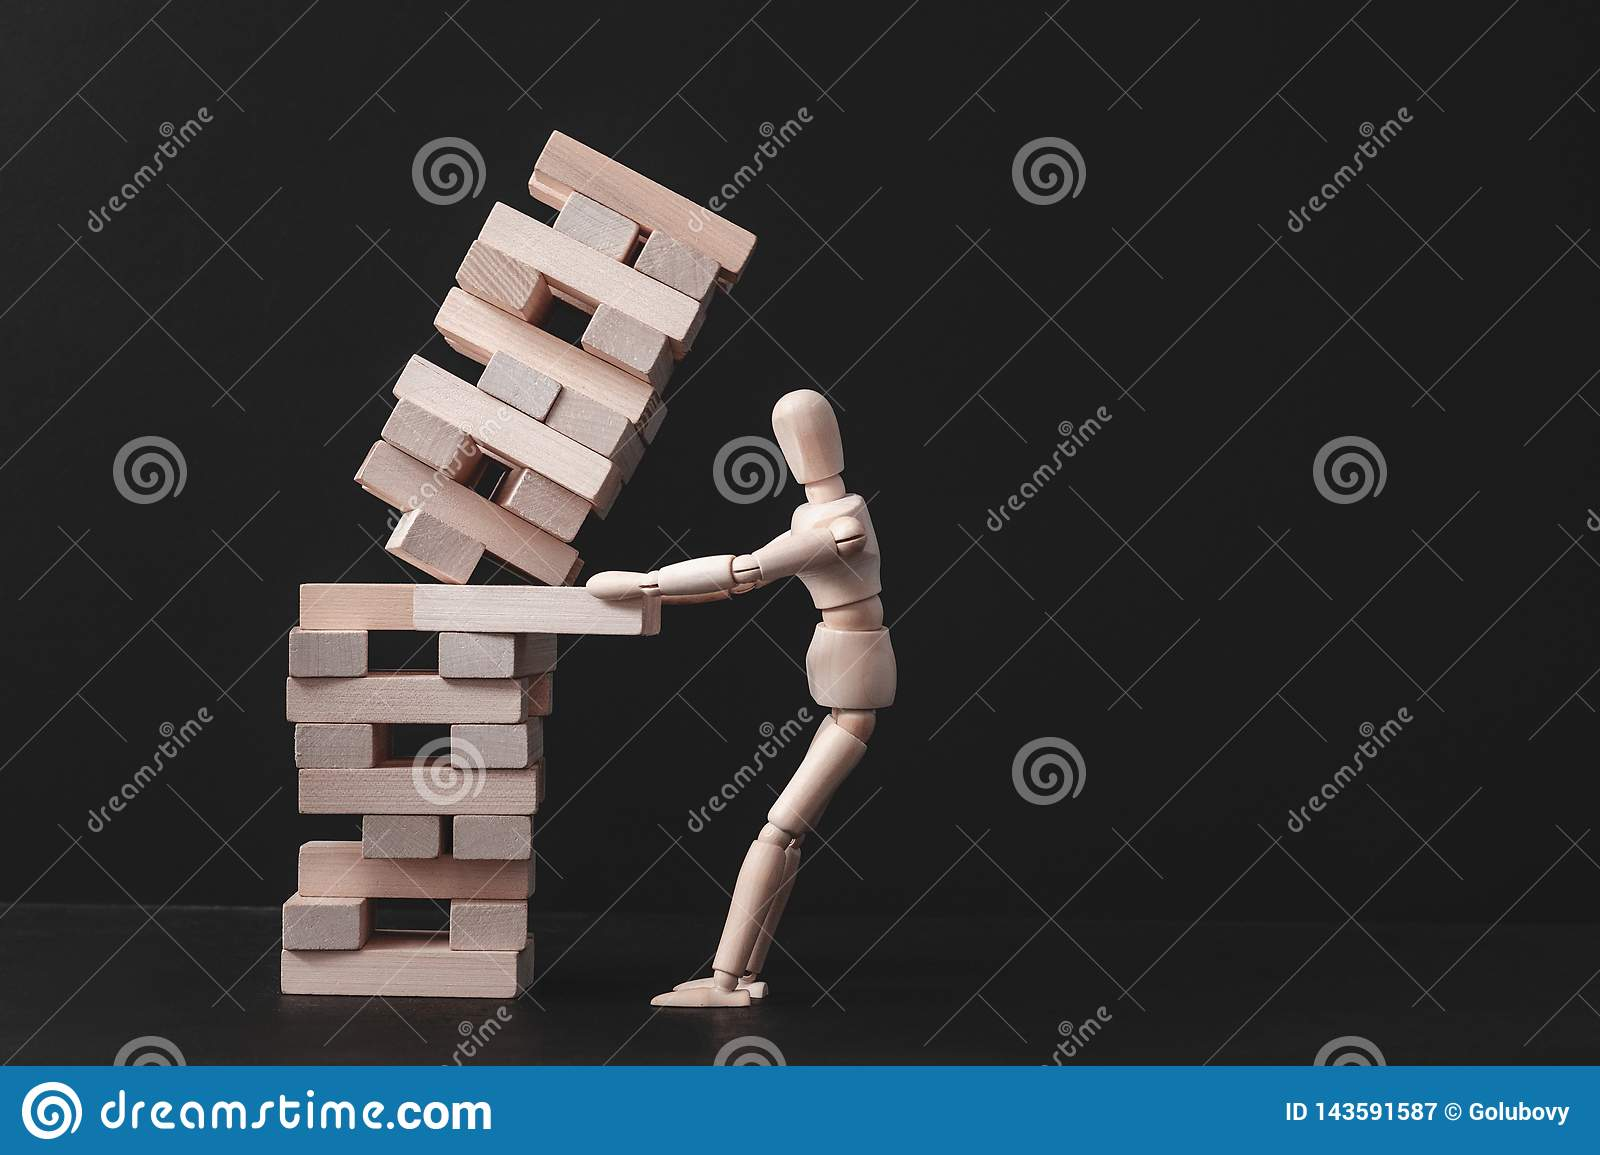 Business Project Strategy Mistake Risk Failure Stock Image - Image